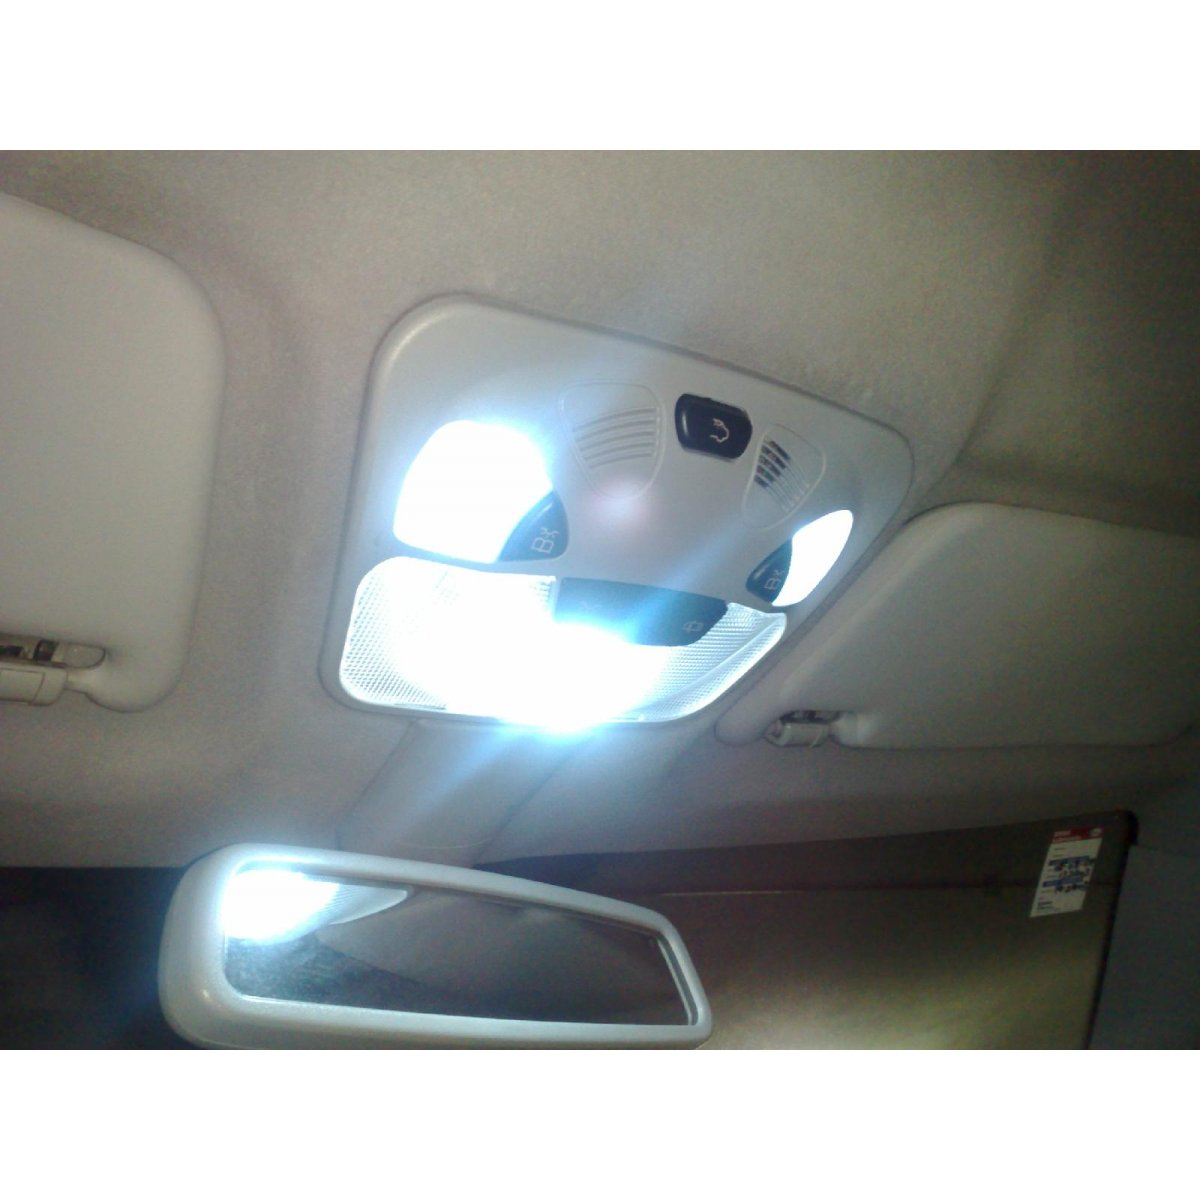 Interior Light : Details about 1953 - 1956 Ford Truck LED CAB INTERIOR DOME LIGHTS